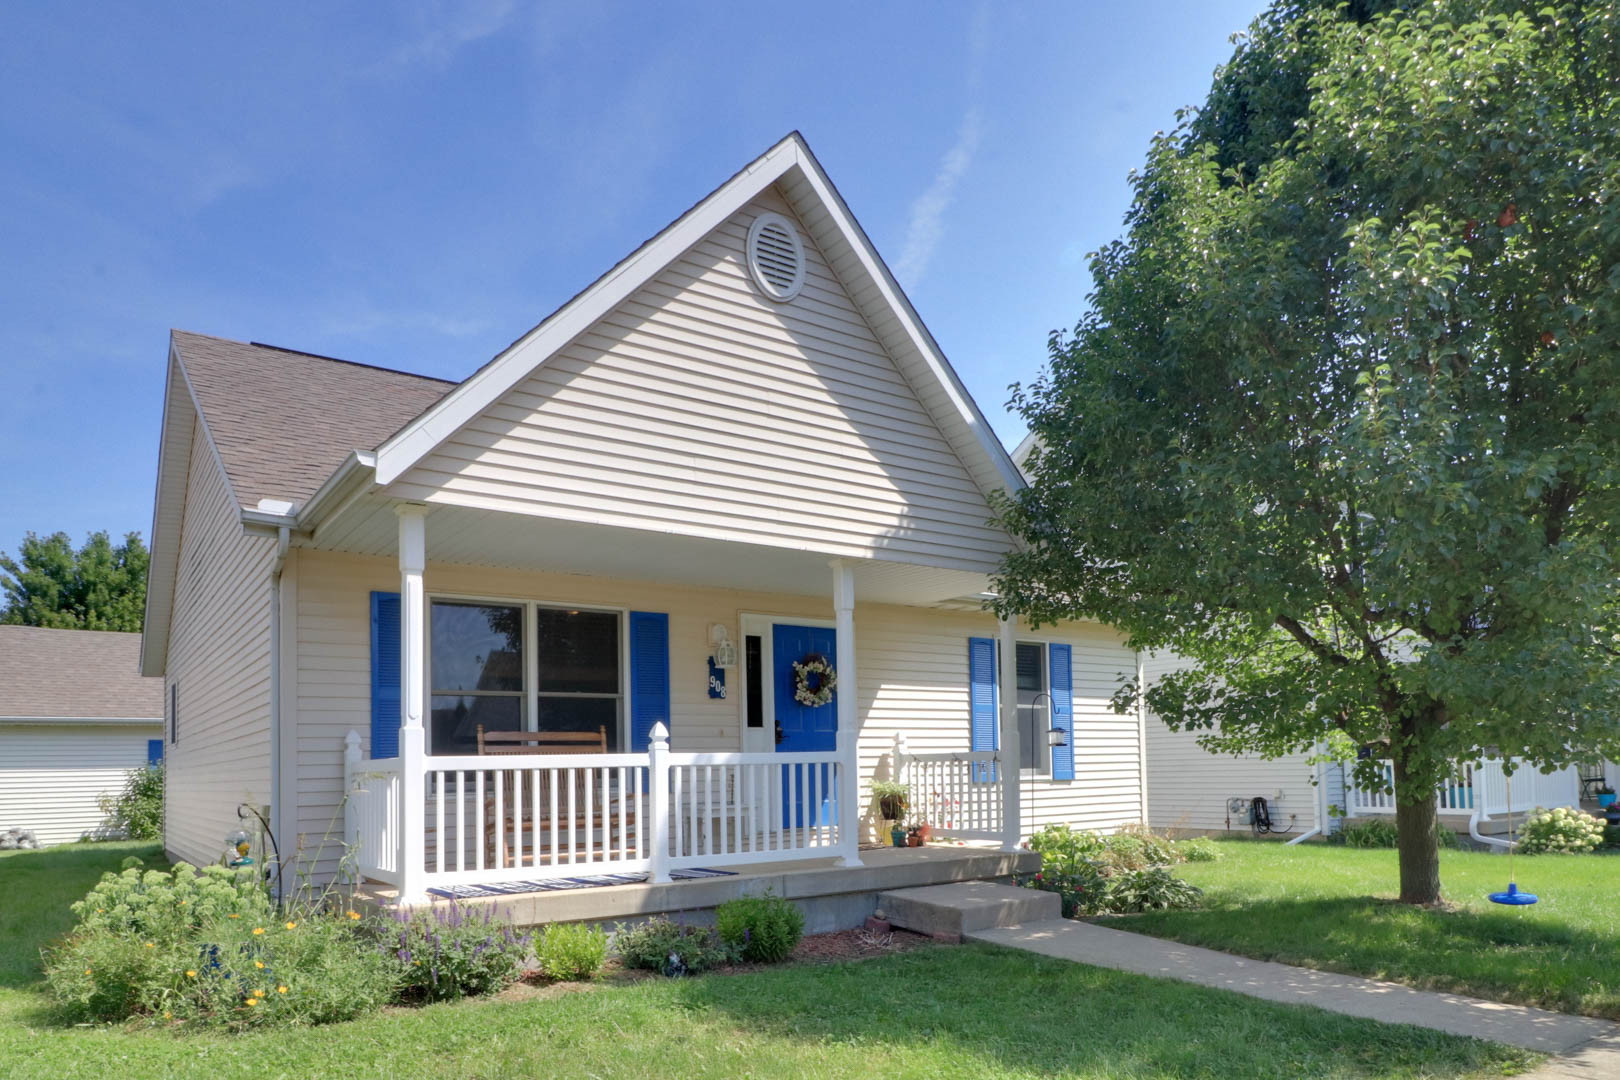 908 Perry Lane,              Normal IL 61761- SOLD!